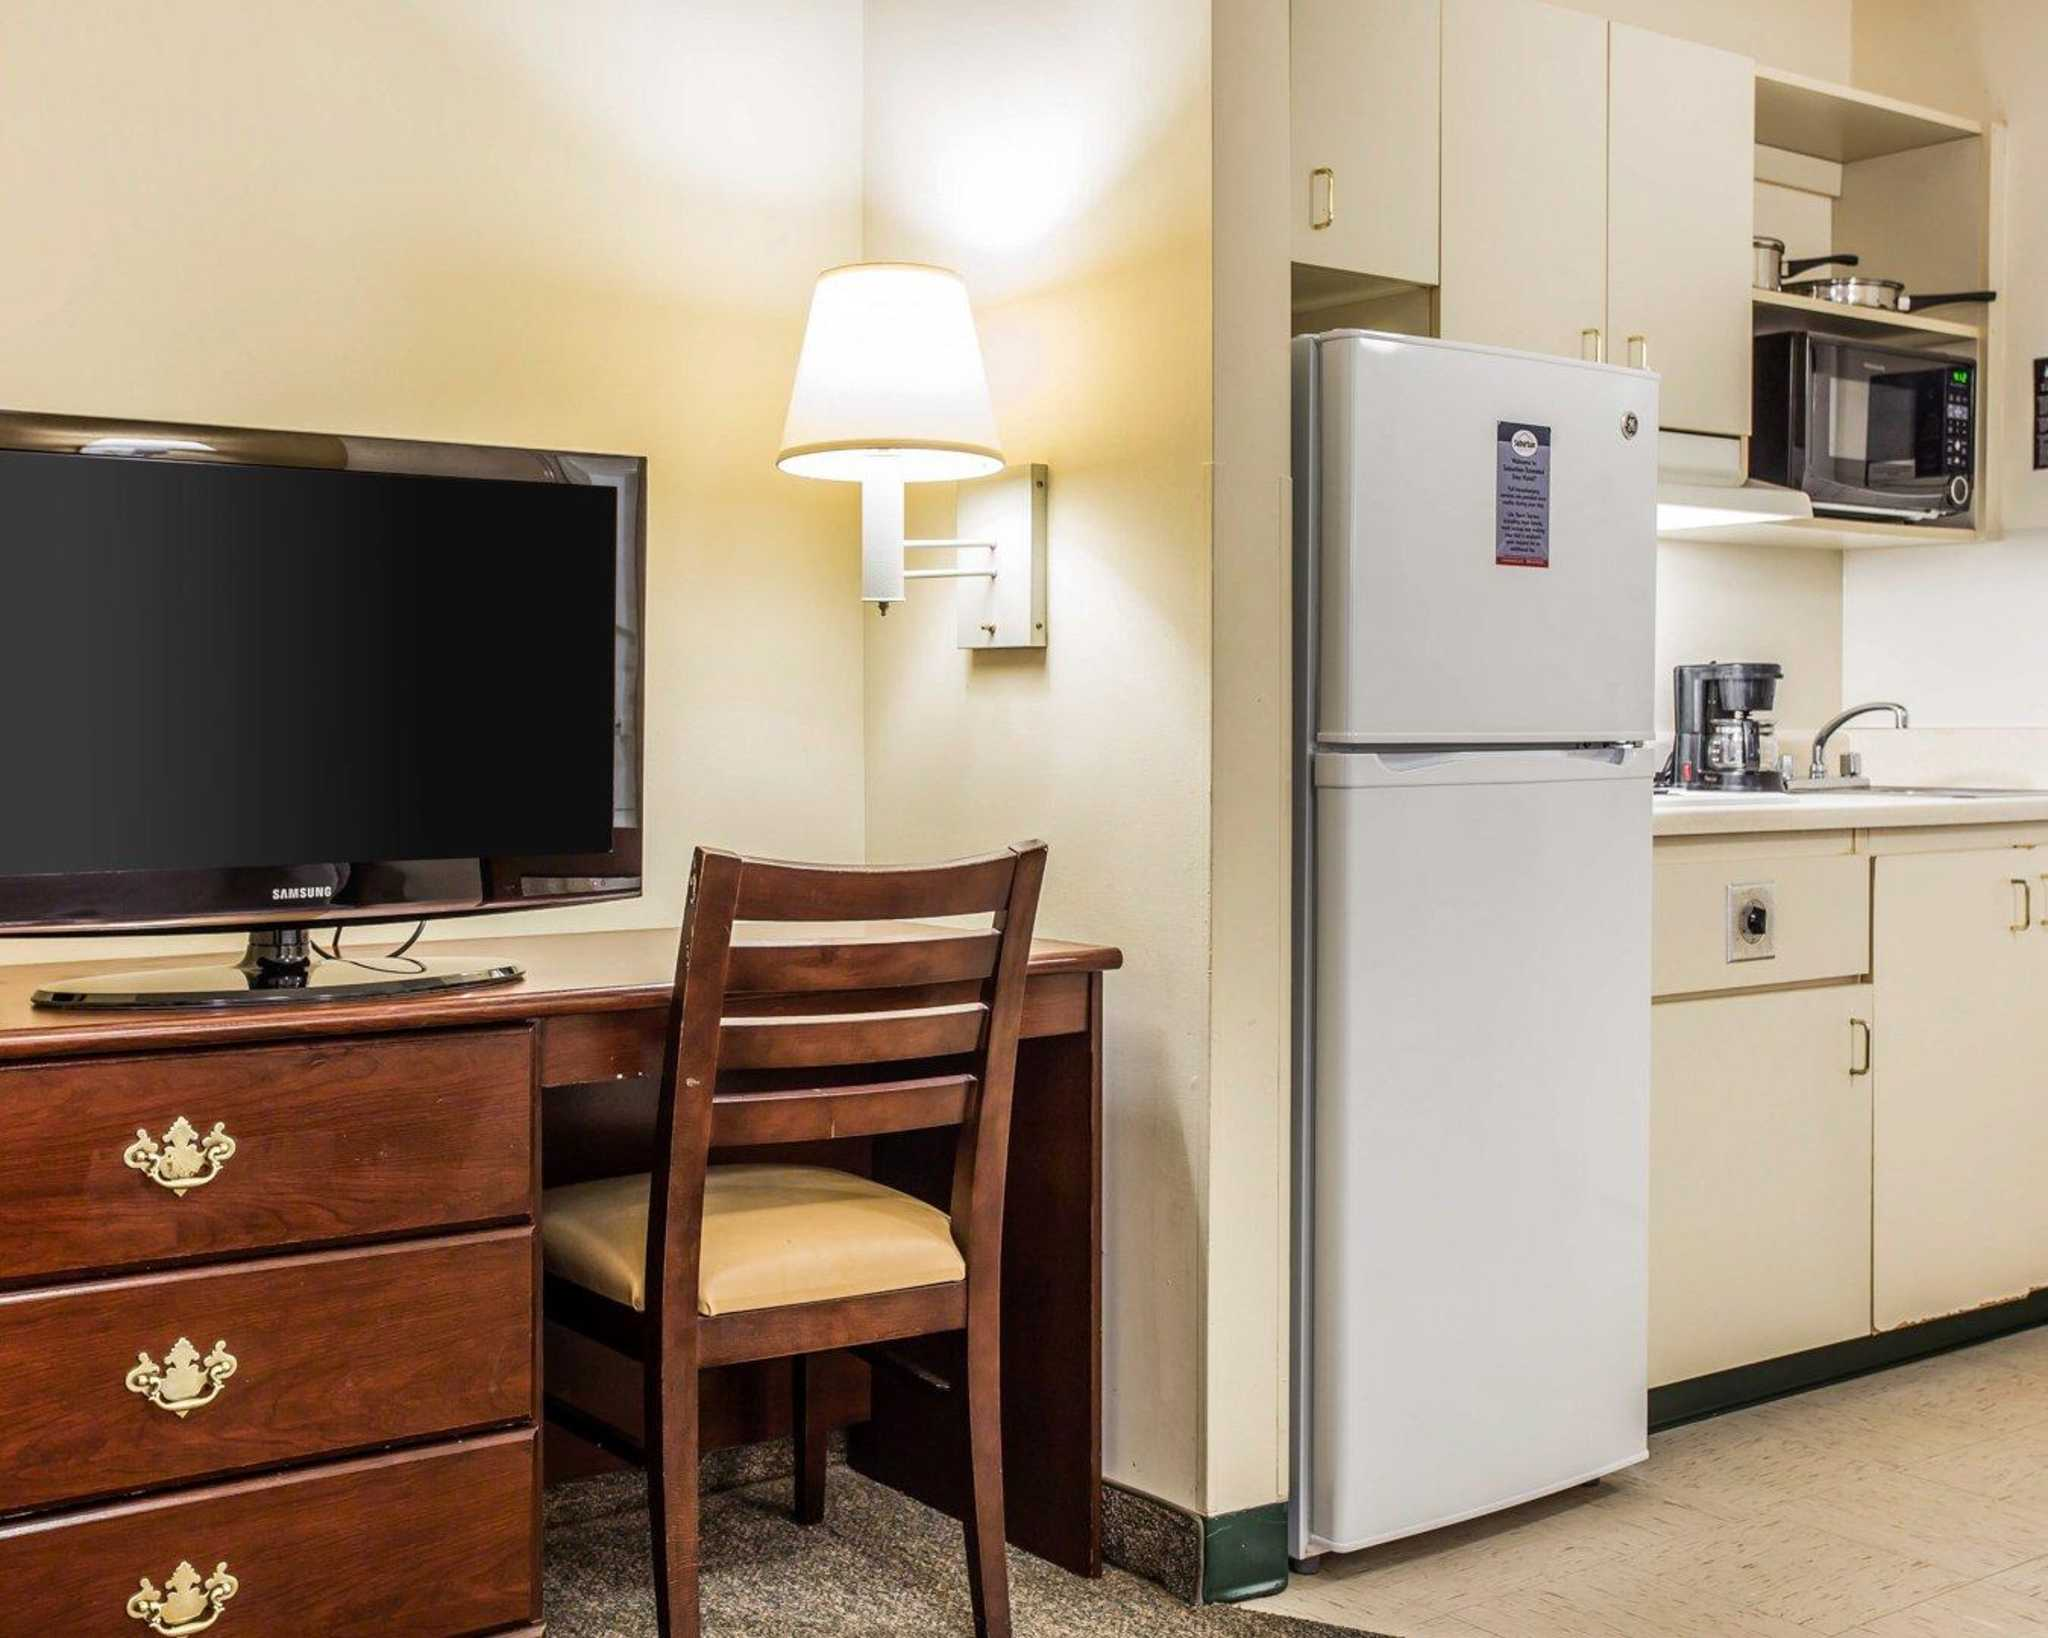 Extended Stay Hotels Near Myrtle Beach